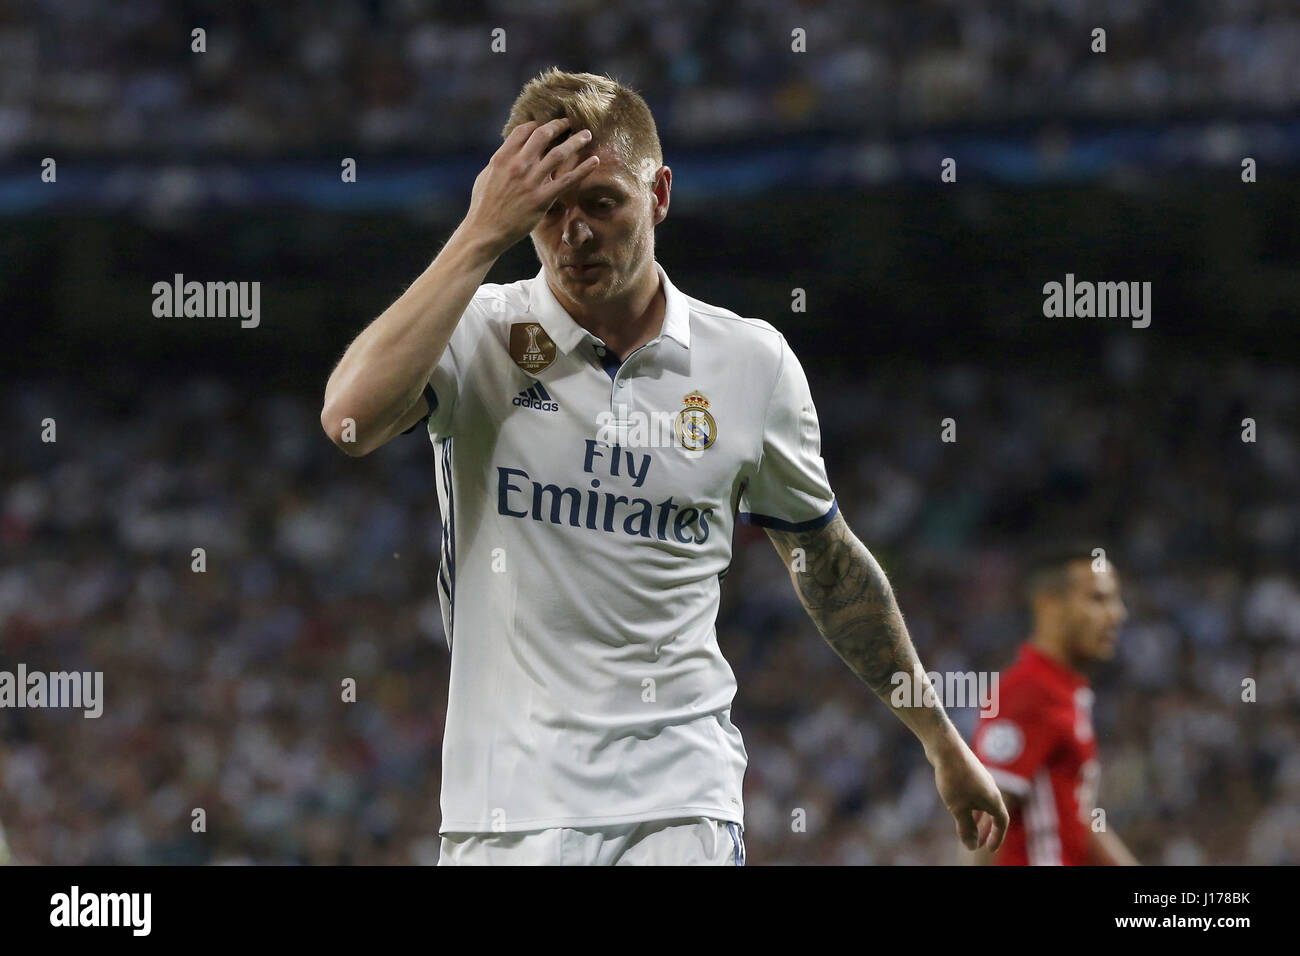 Madrid, Spain. 18th Apr, 2017. Real Madrid's German midfielder Toni Kroos reacts during the UEFA Champions League - Stock Image